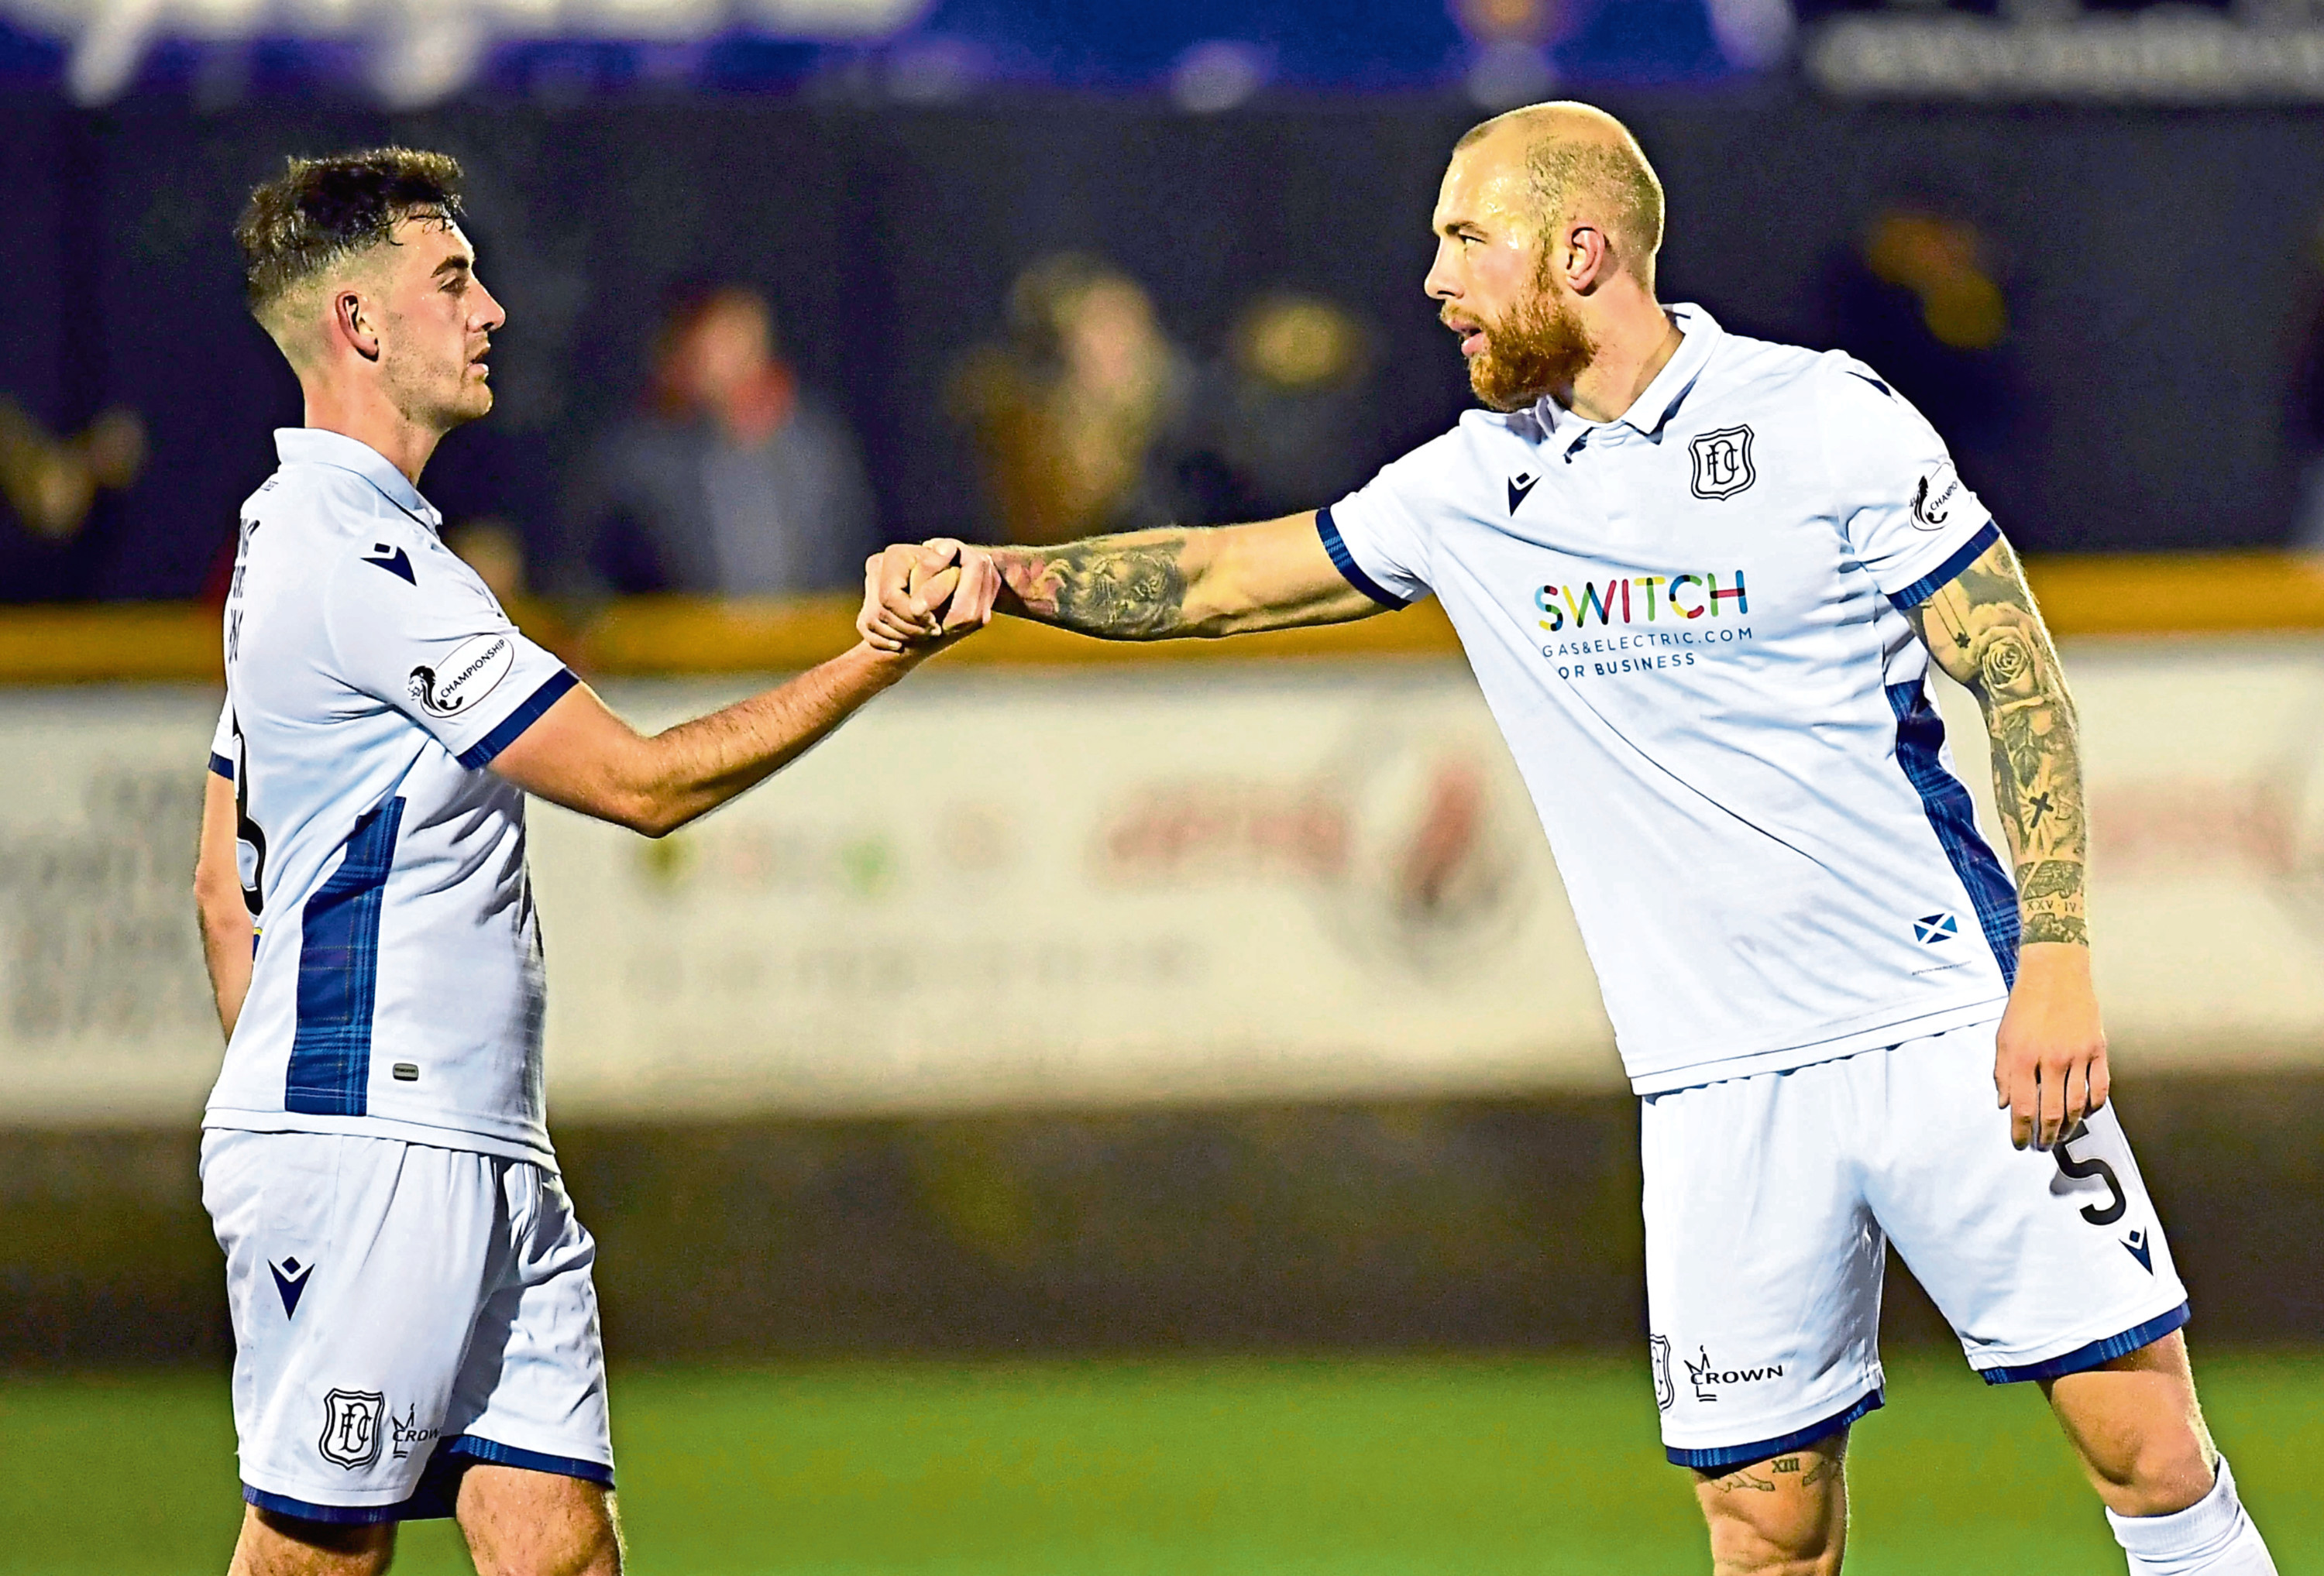 Dundee's Jordon Forster (right) celebrates with Shaun Byrne at full time of the Ladbrokes Championship match between Alloa Athletic and Dundee.